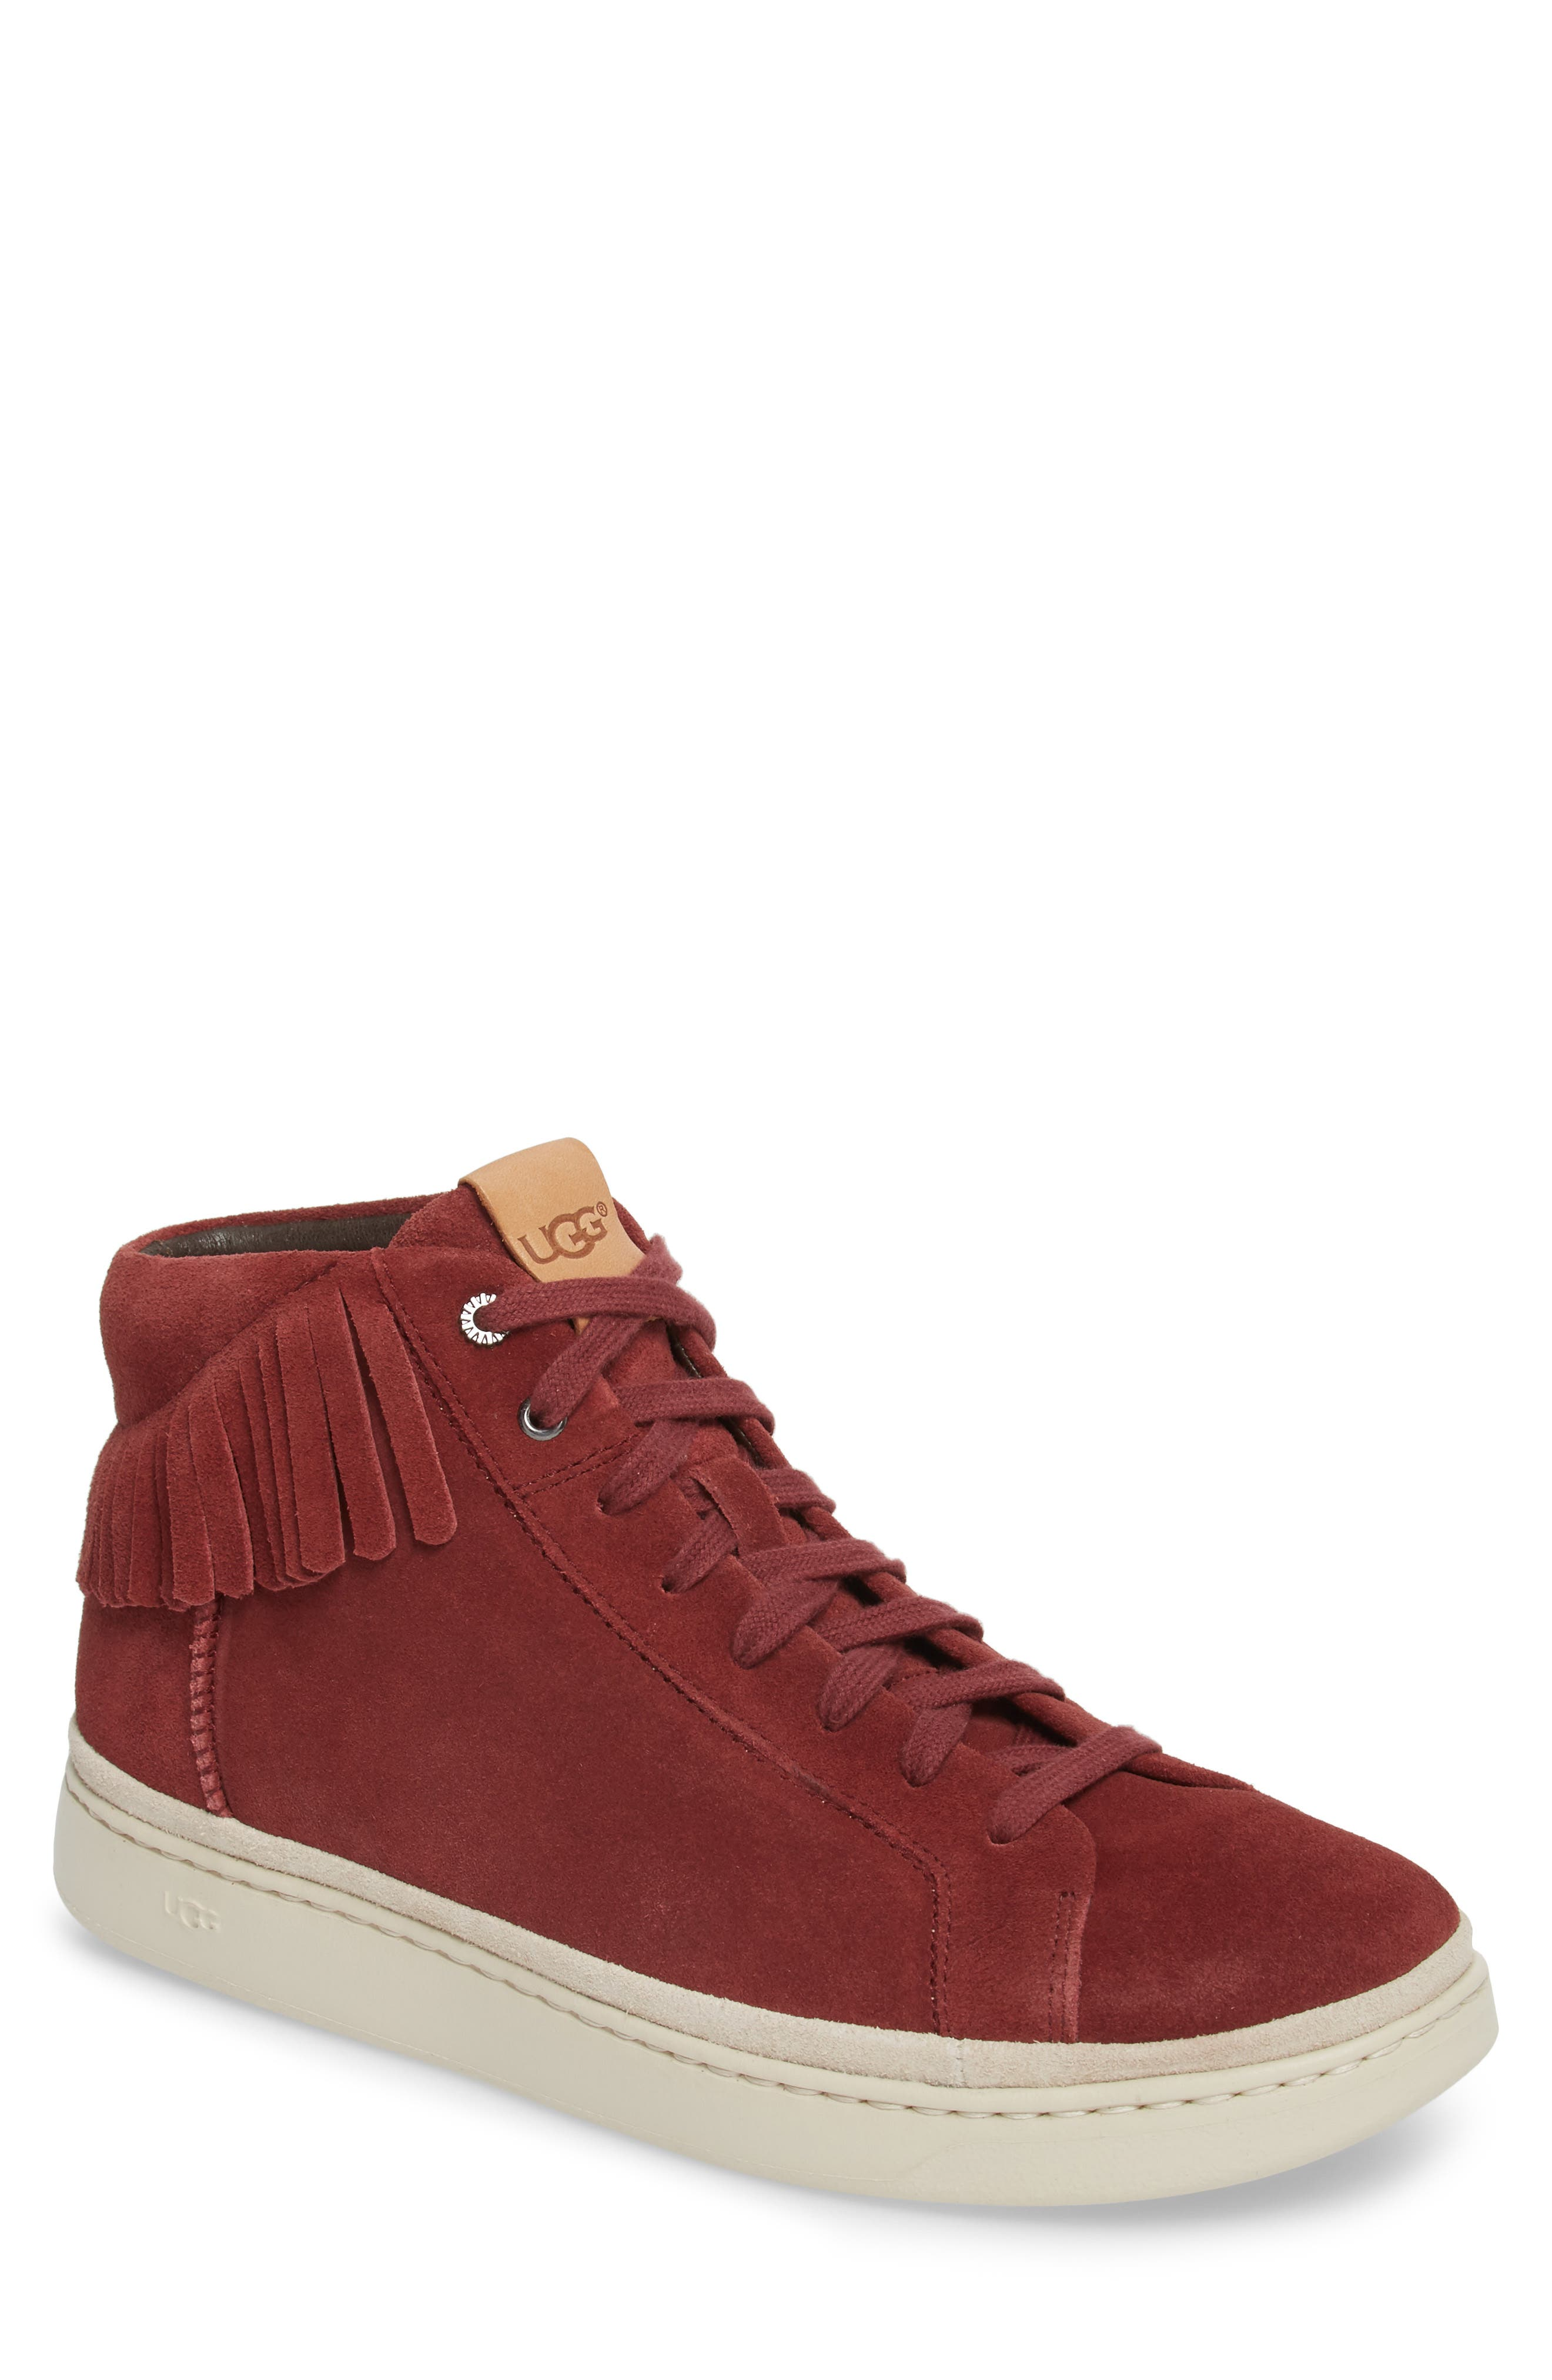 Brecken Fringe High-Top Sneaker,                             Main thumbnail 1, color,                             Pinot Noir Leather